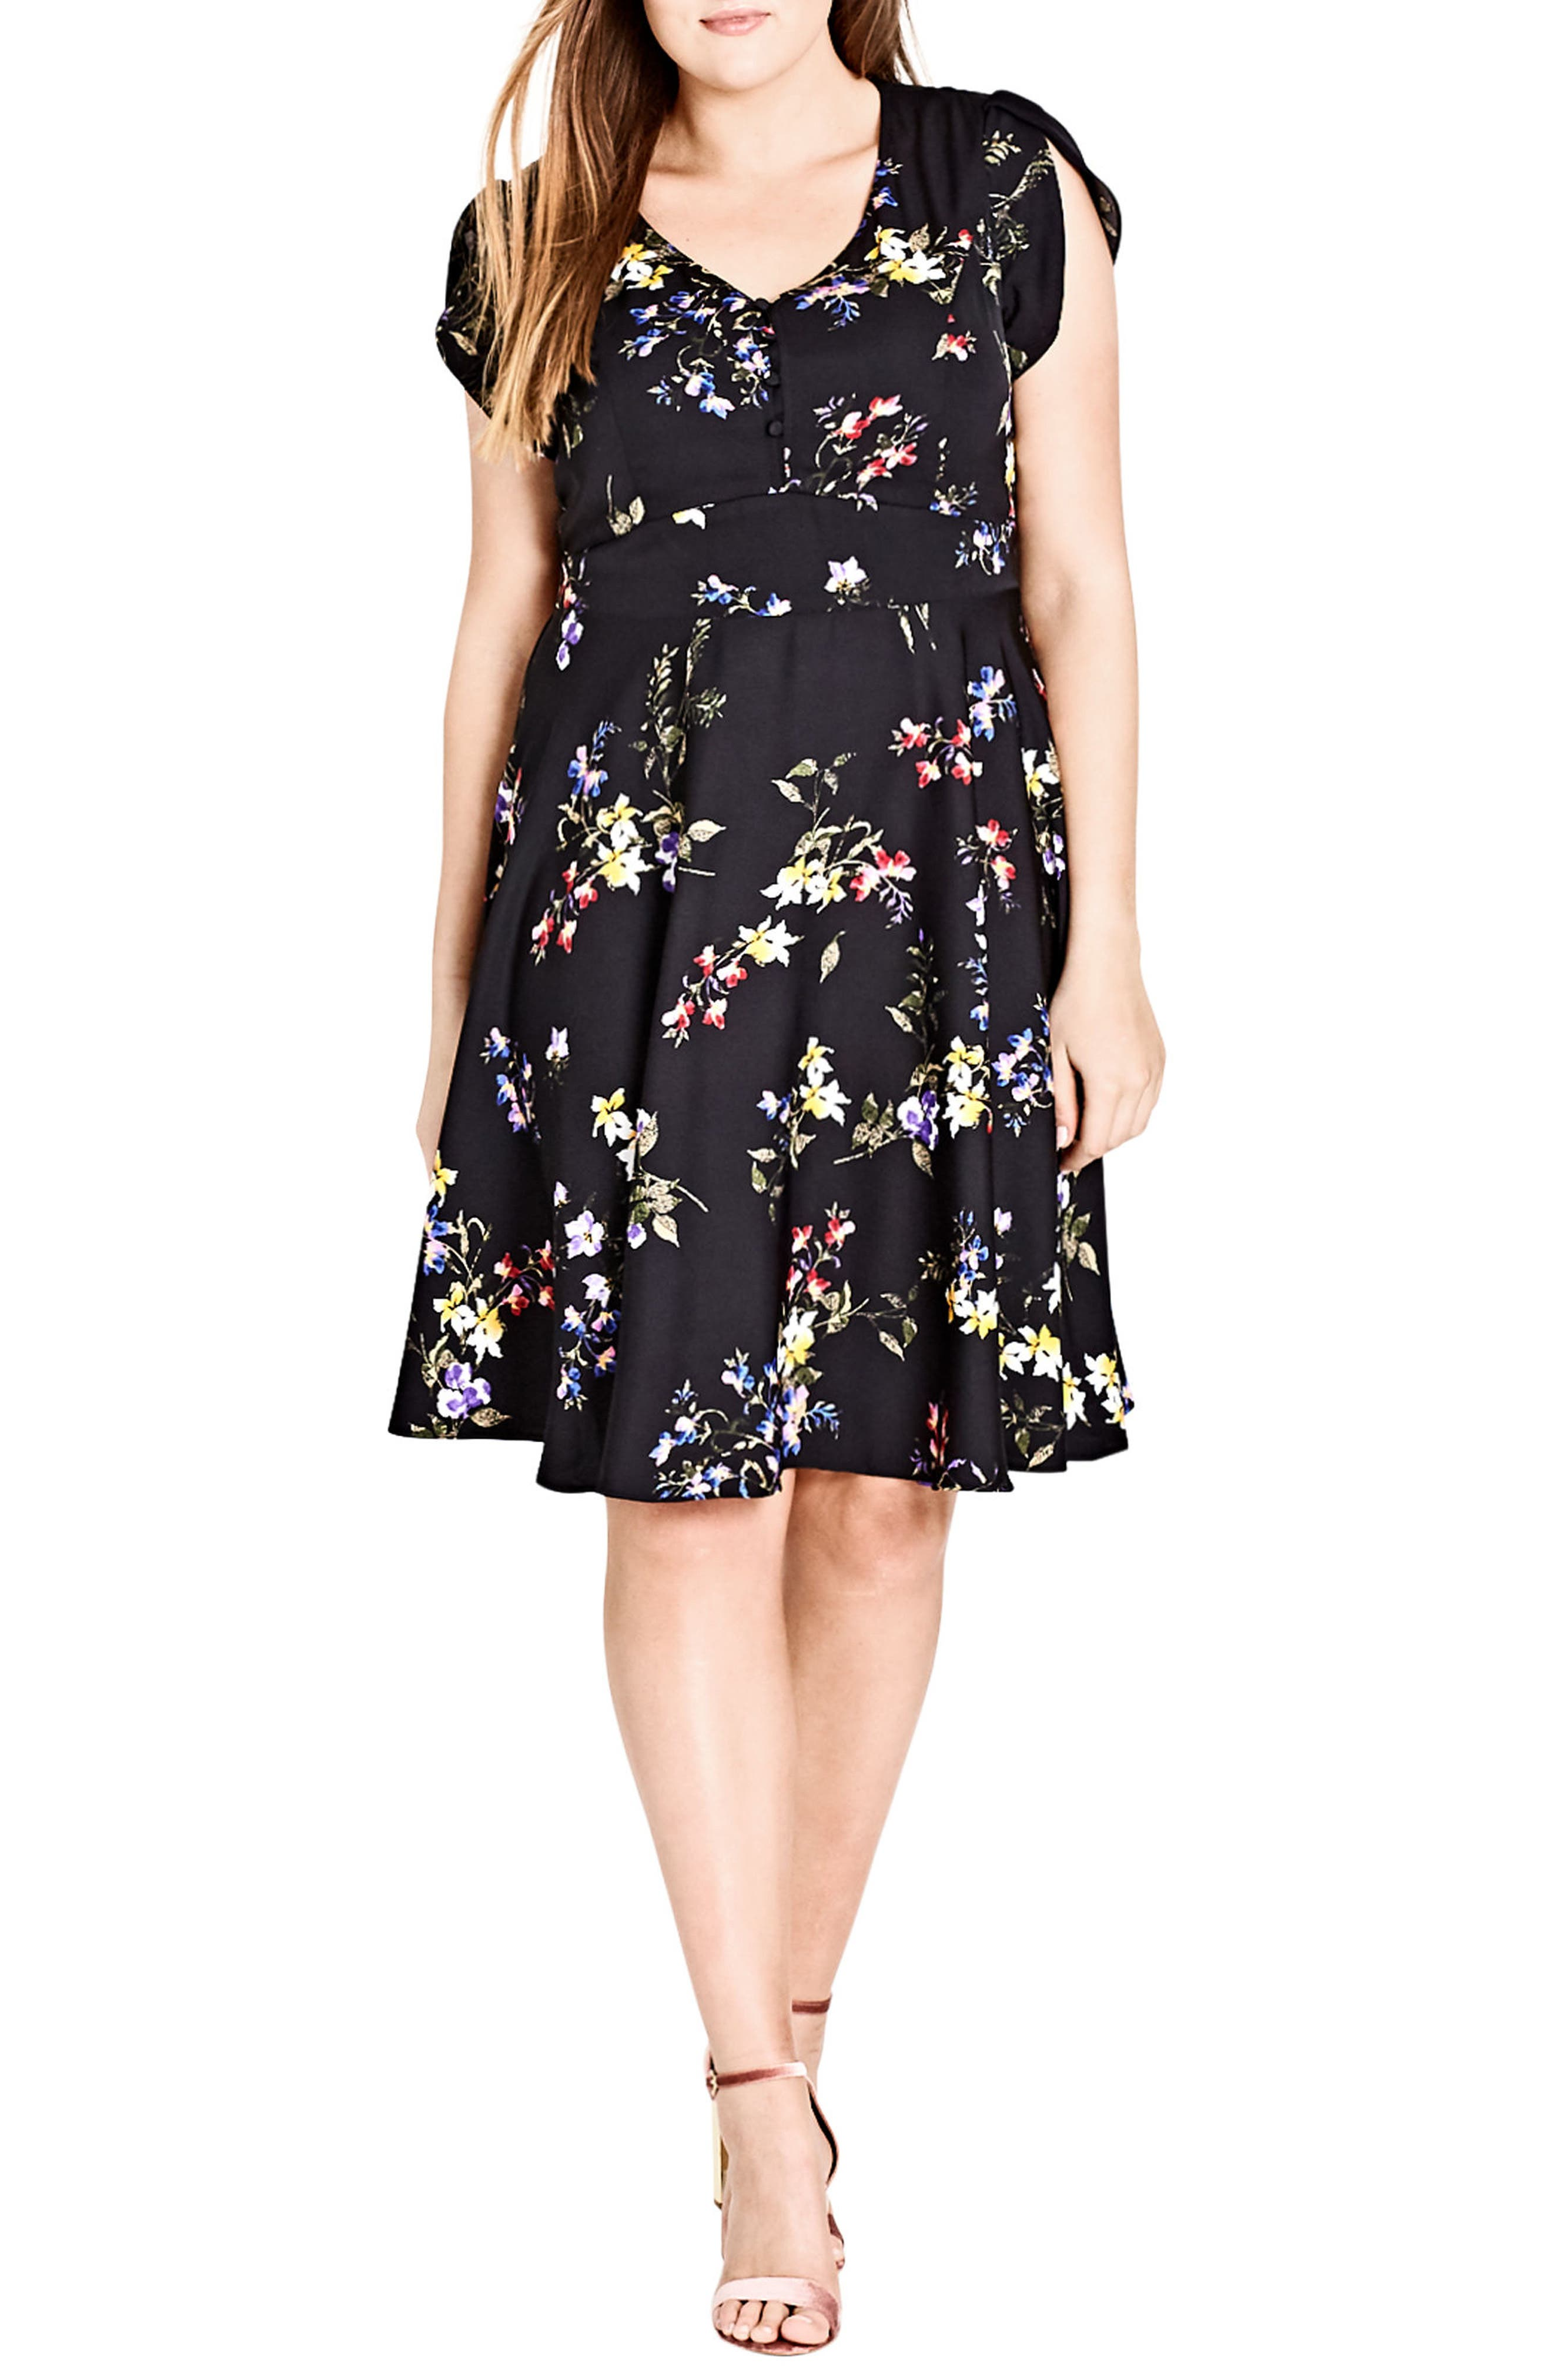 Free Love Floral Fit & Flare Dress,                             Main thumbnail 1, color,                             FREE LOVE